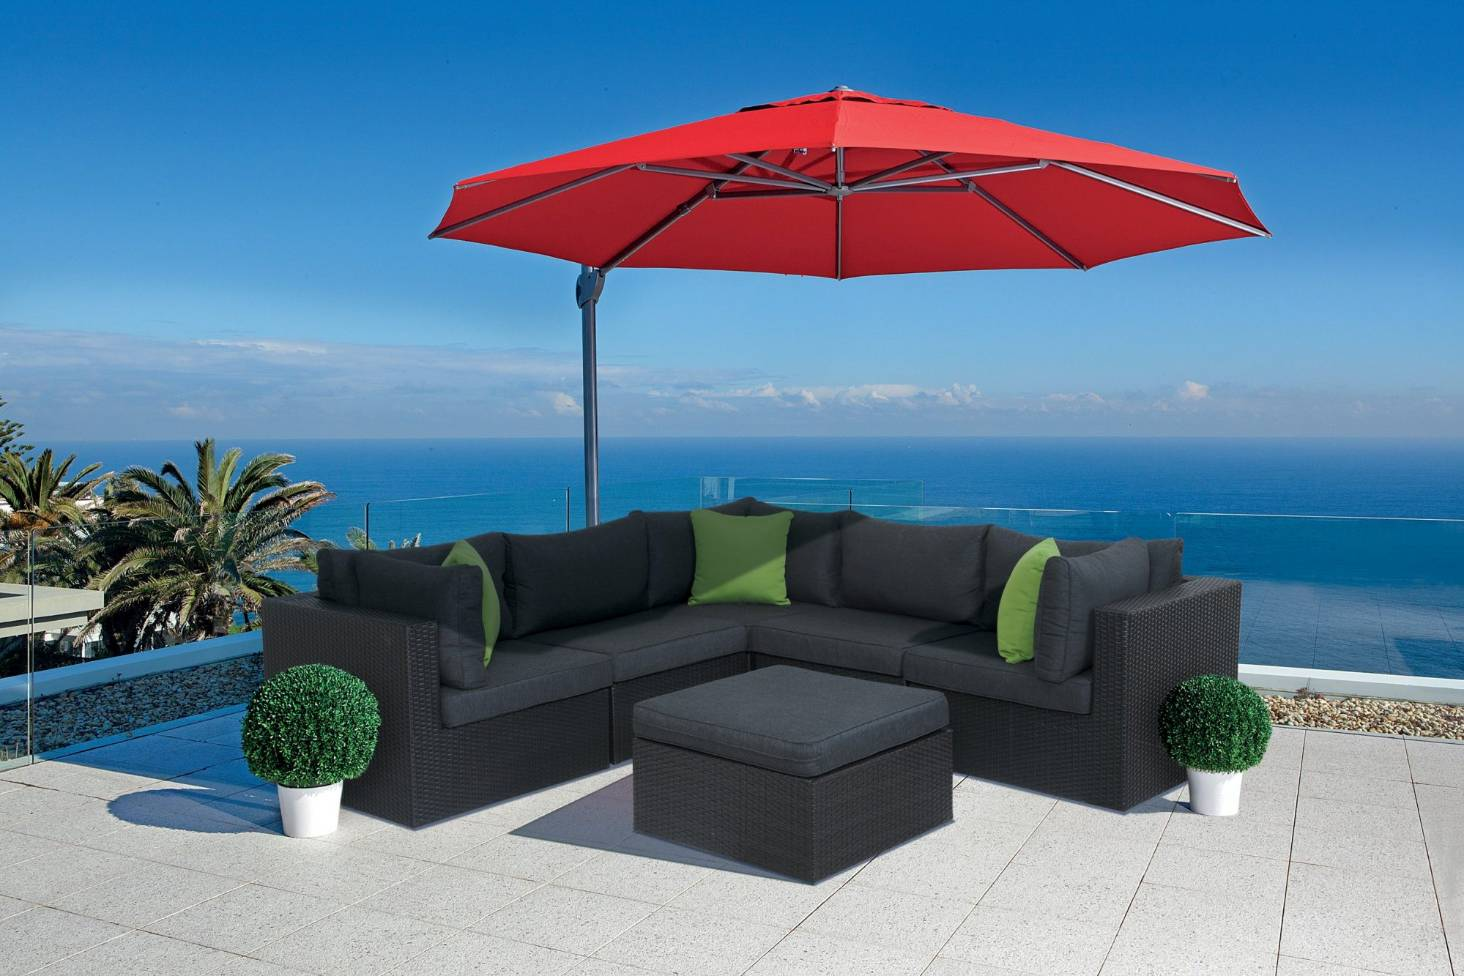 afterpay furniture oil outdoor bunnings table sunbrella waterproof covers clearance kmart chair winning briscoes depot home cushions settings mitre mimosa side full size dale